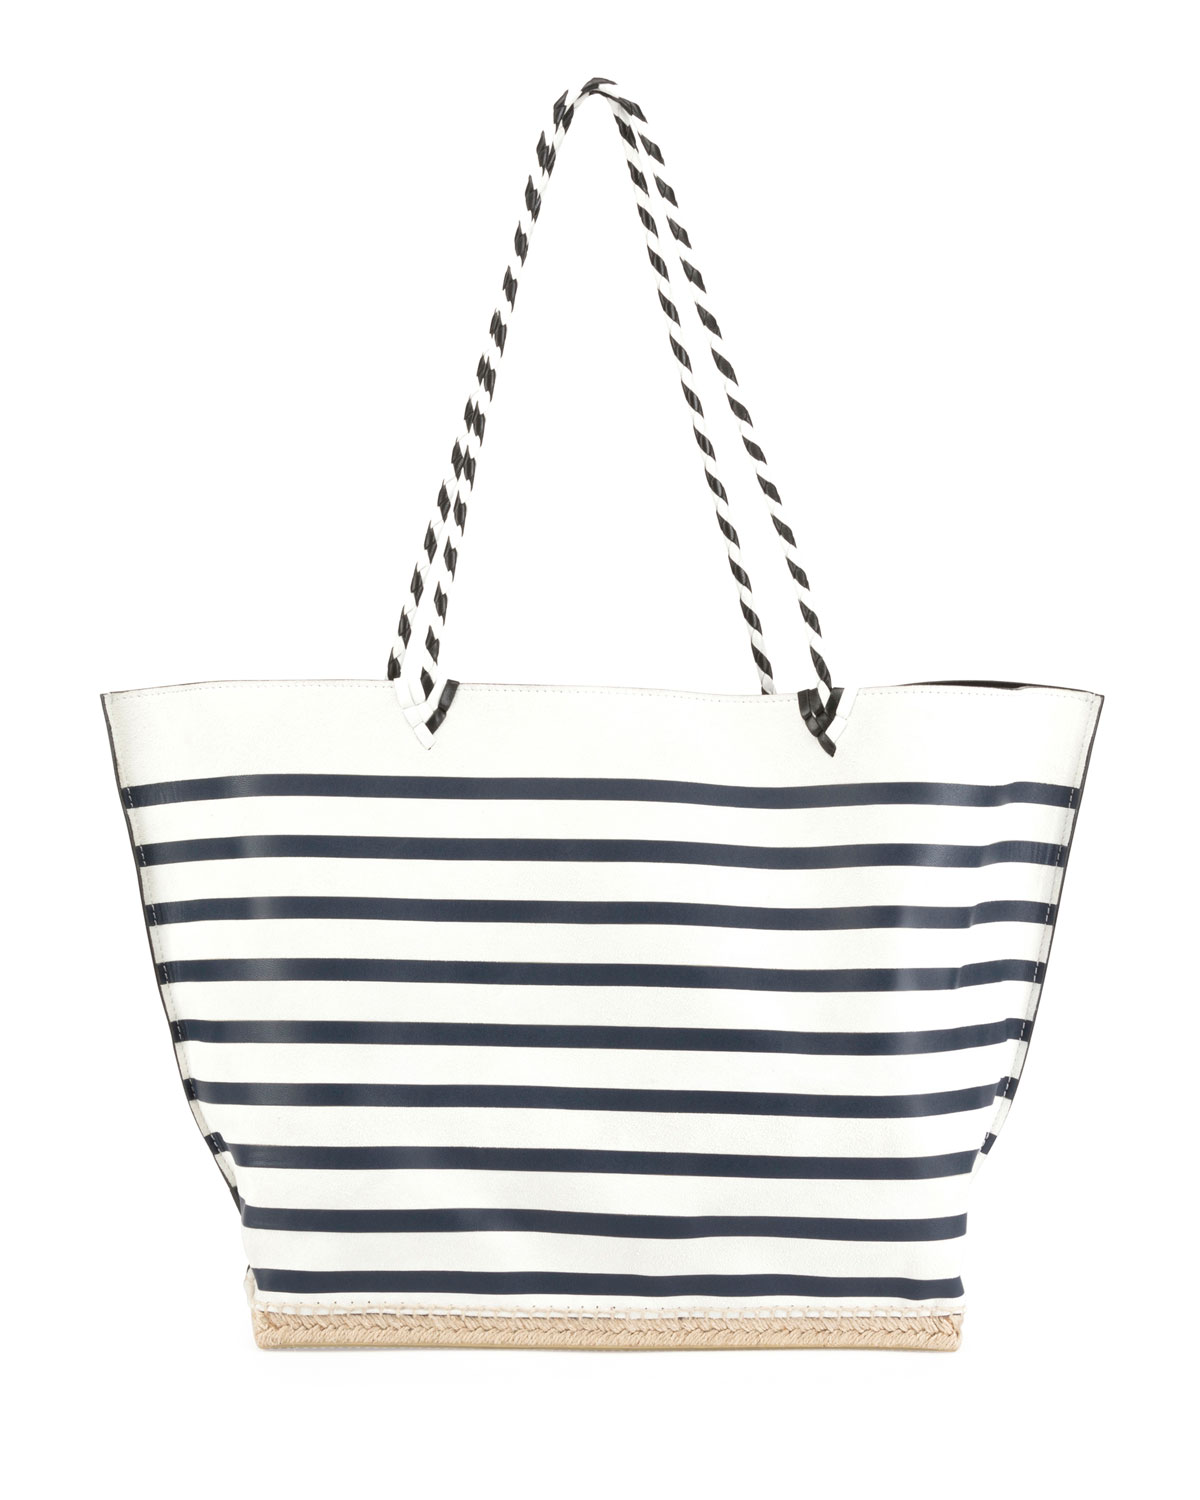 ESPADRILLE LARGE STRIPED TOTE BAG from Neiman Marcus